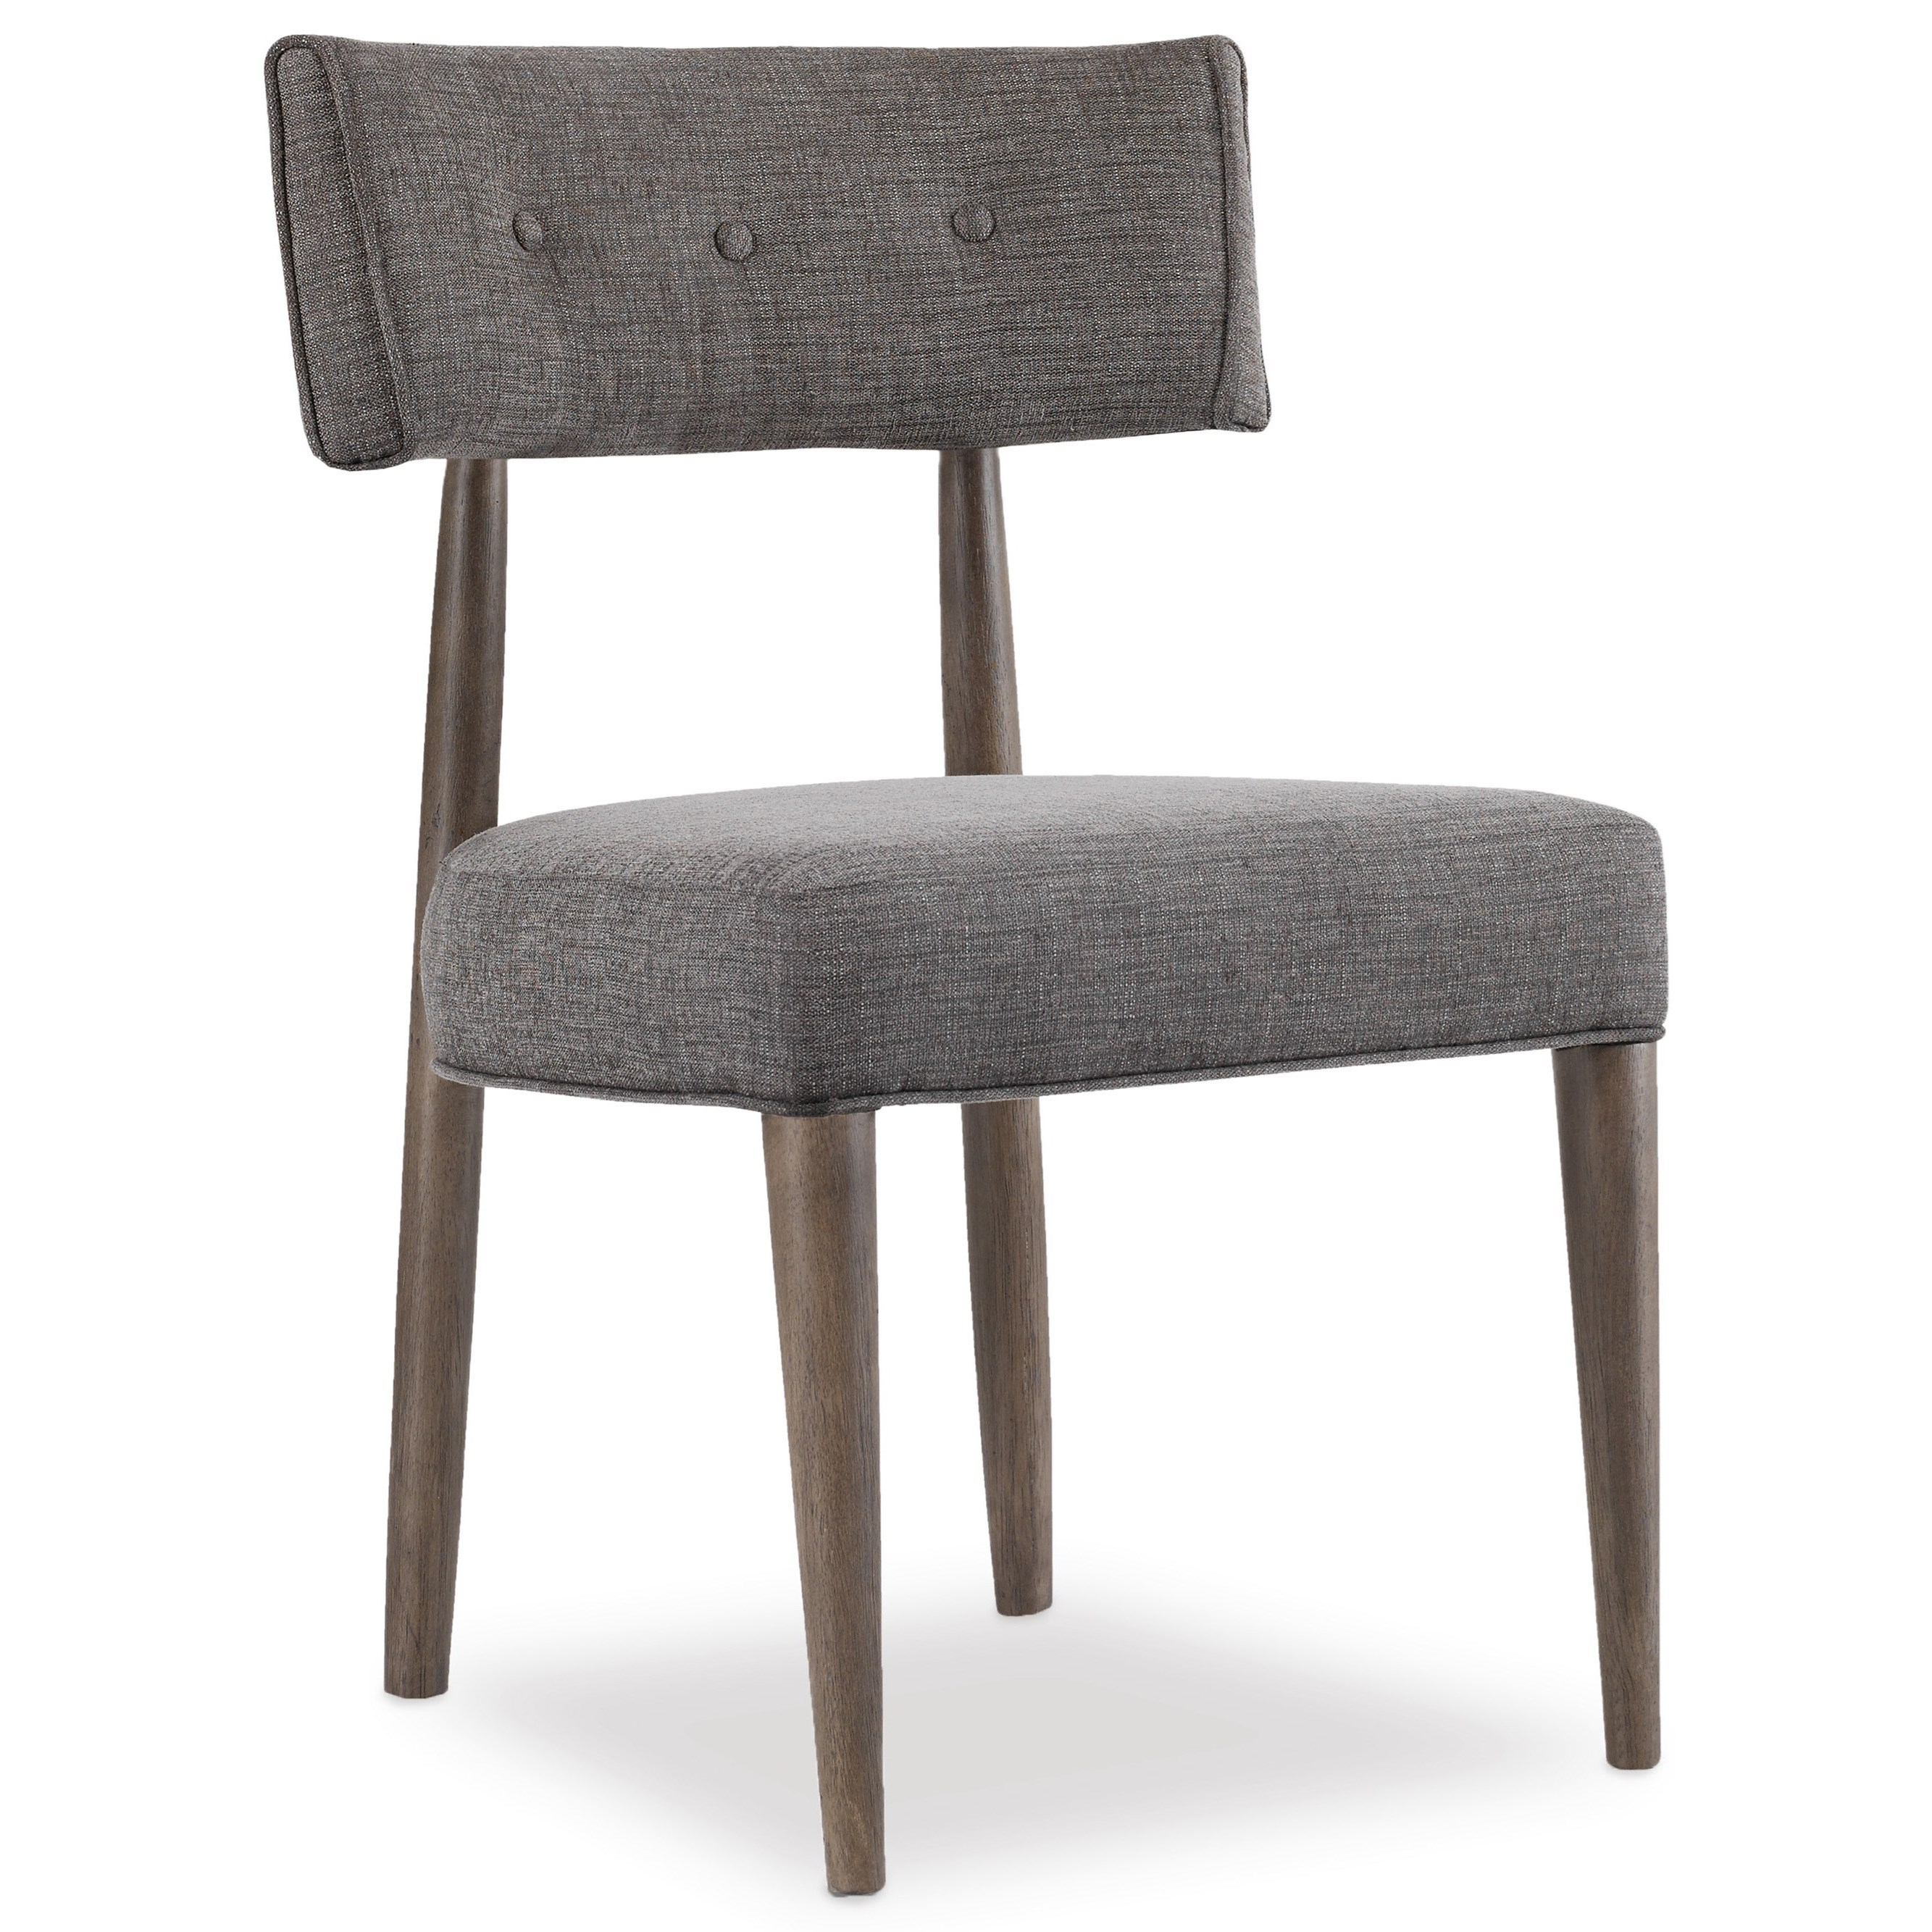 Hooker furniture curata 1600 75510 mwd modern upholstered for Modern upholstered dining room chairs